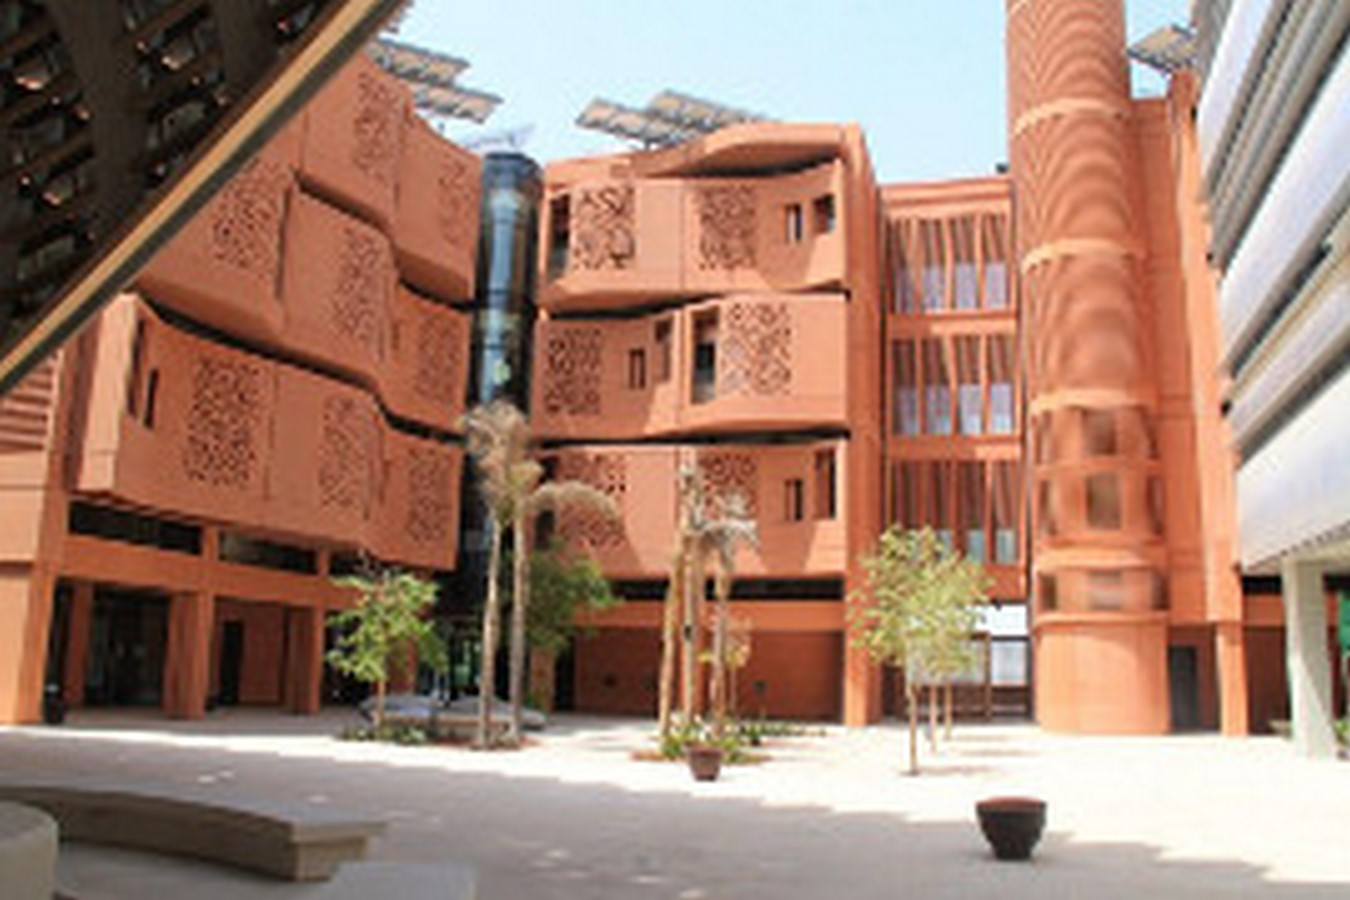 10 Structures that represent the Historical architecture of UAE - Sheet9